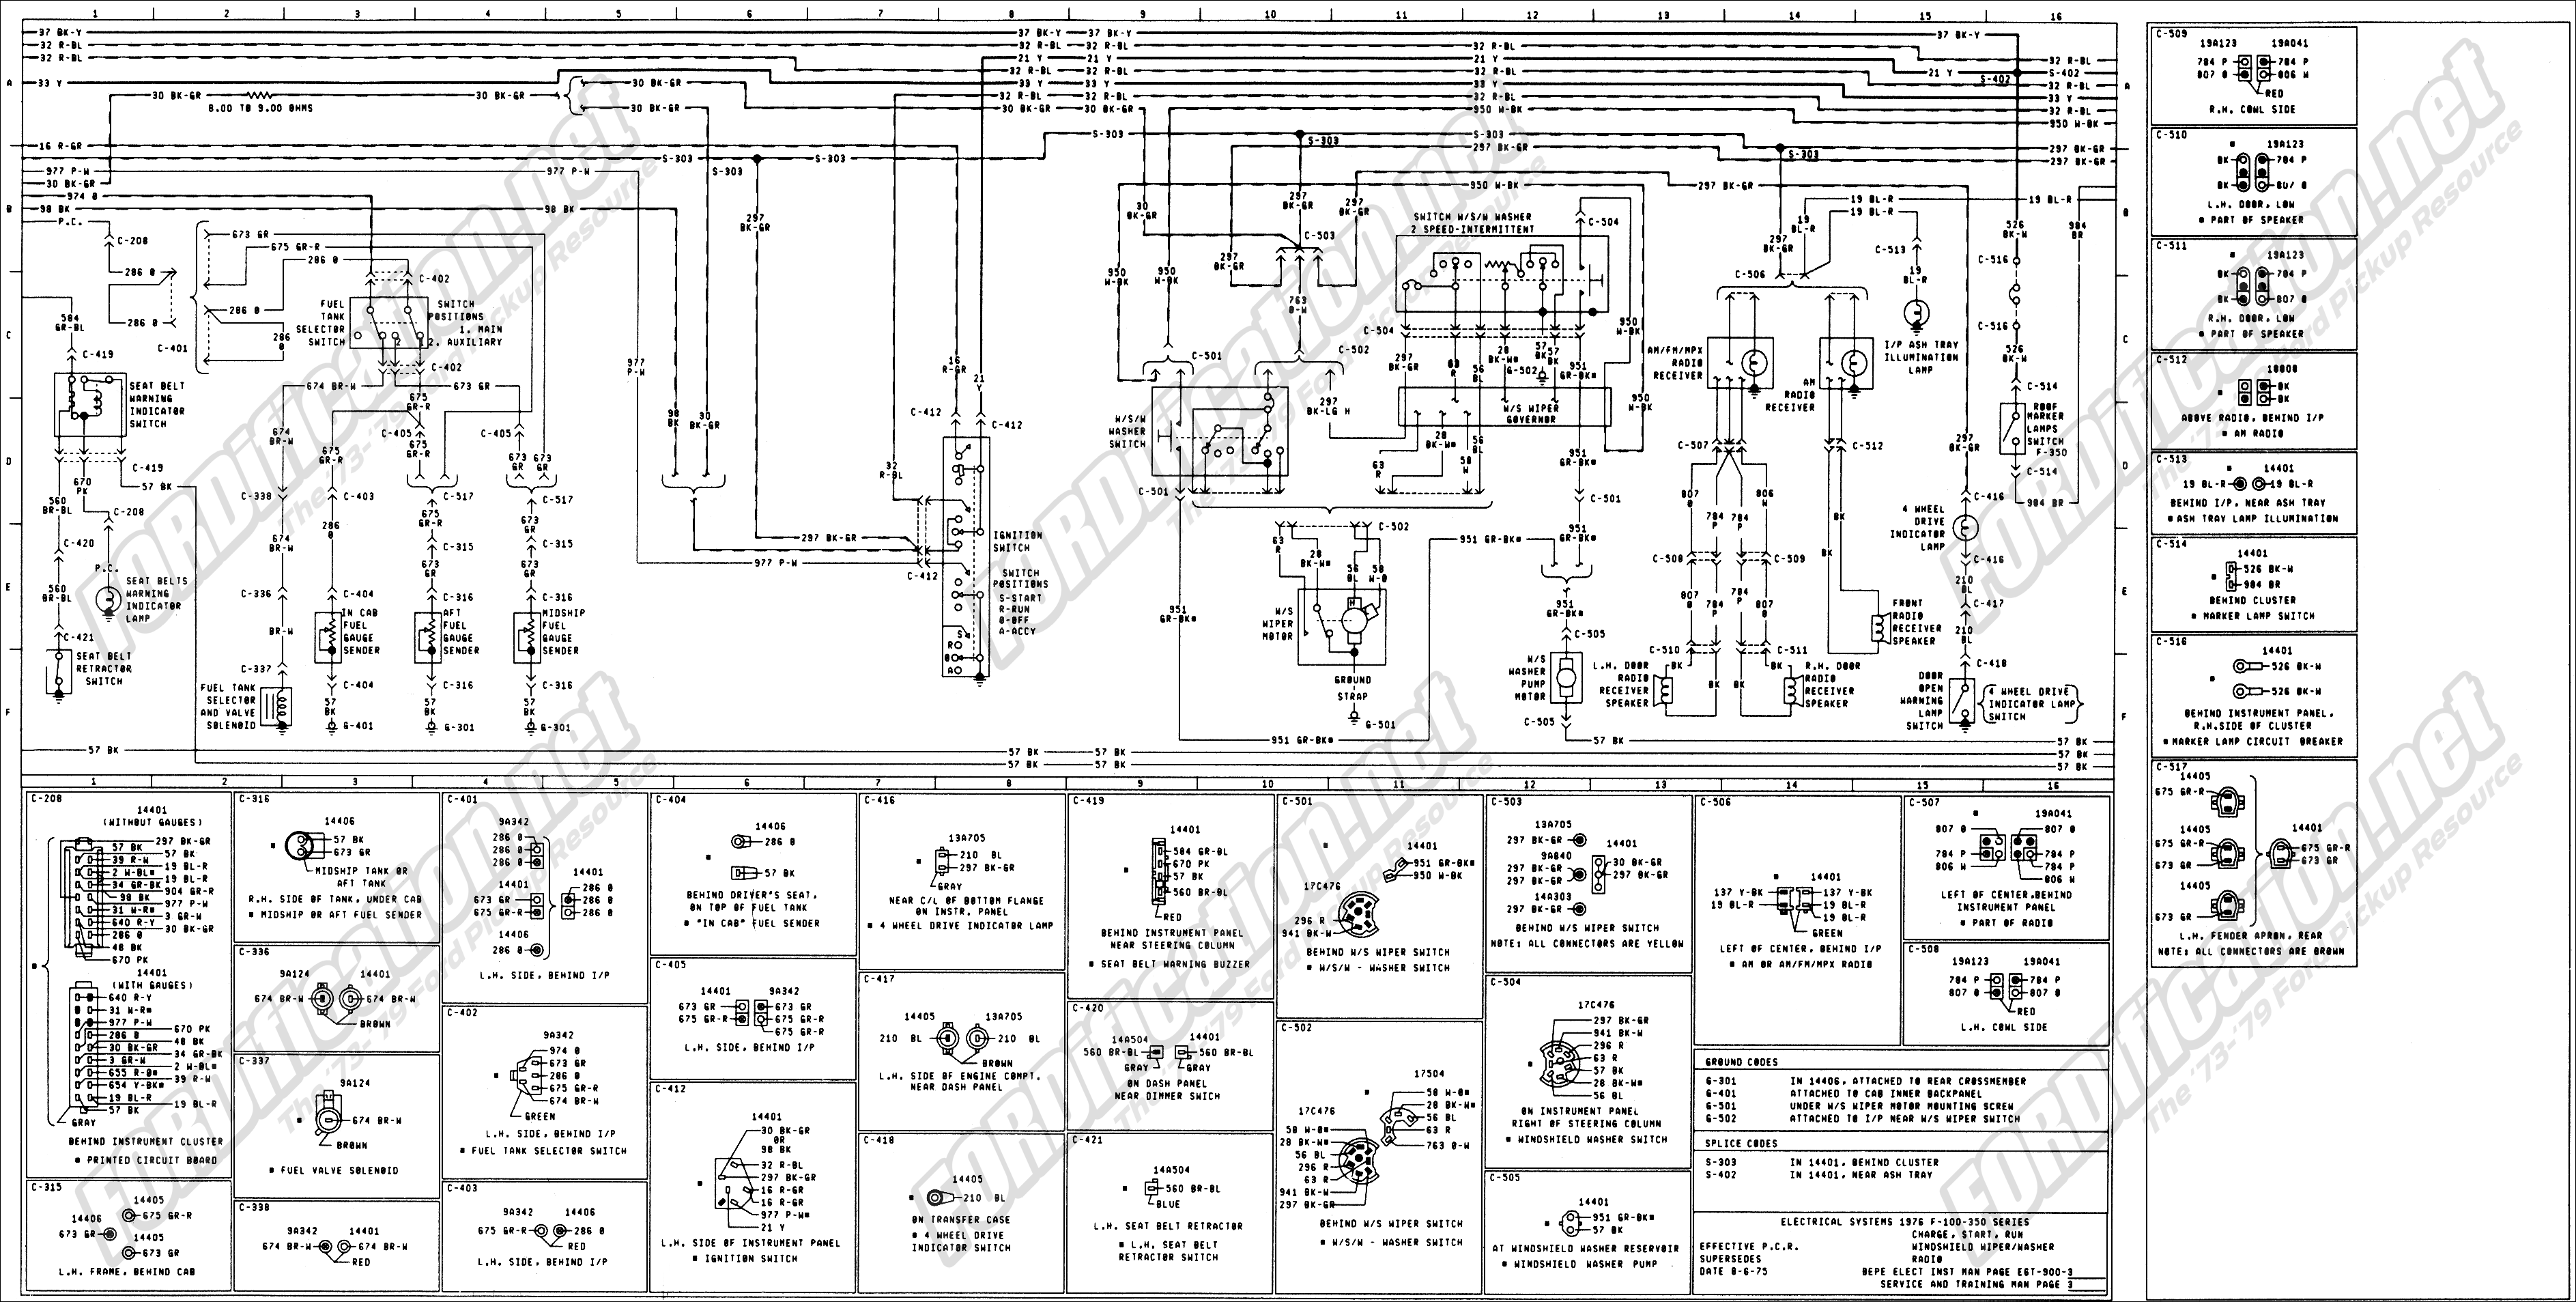 wiring_76master_3of9 1973 1979 ford truck wiring diagrams & schematics fordification net 2008 ford ranger electrical wiring diagram at bayanpartner.co